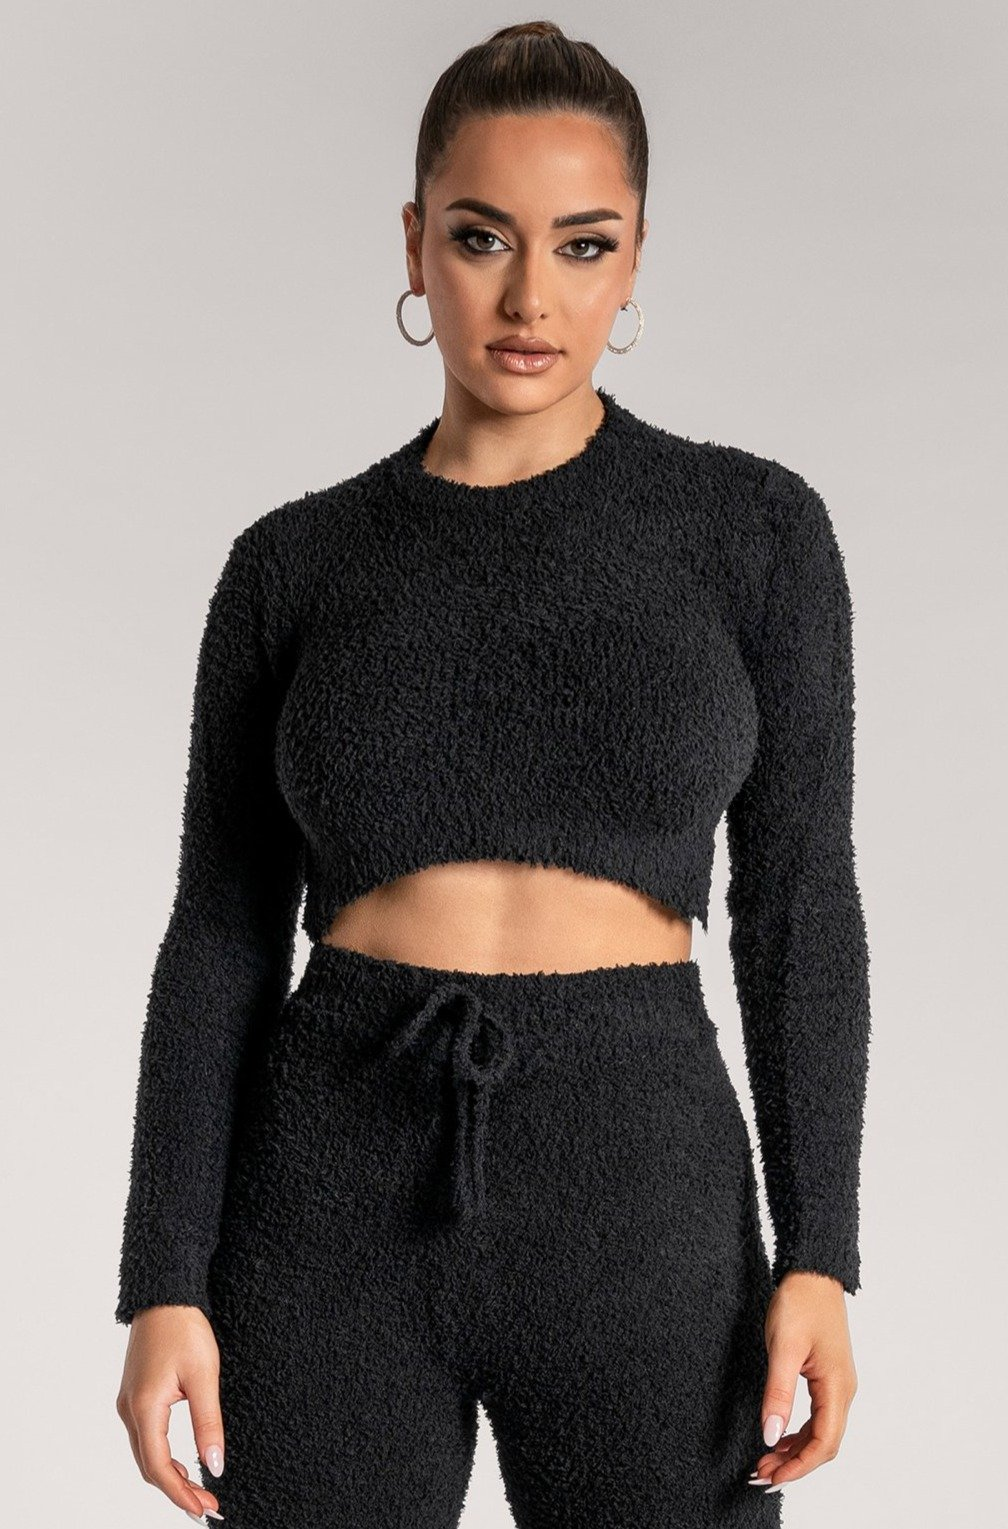 Charlotte Popcorn Long Sleeve Cut Out Back Crop Top - Black - MESHKI